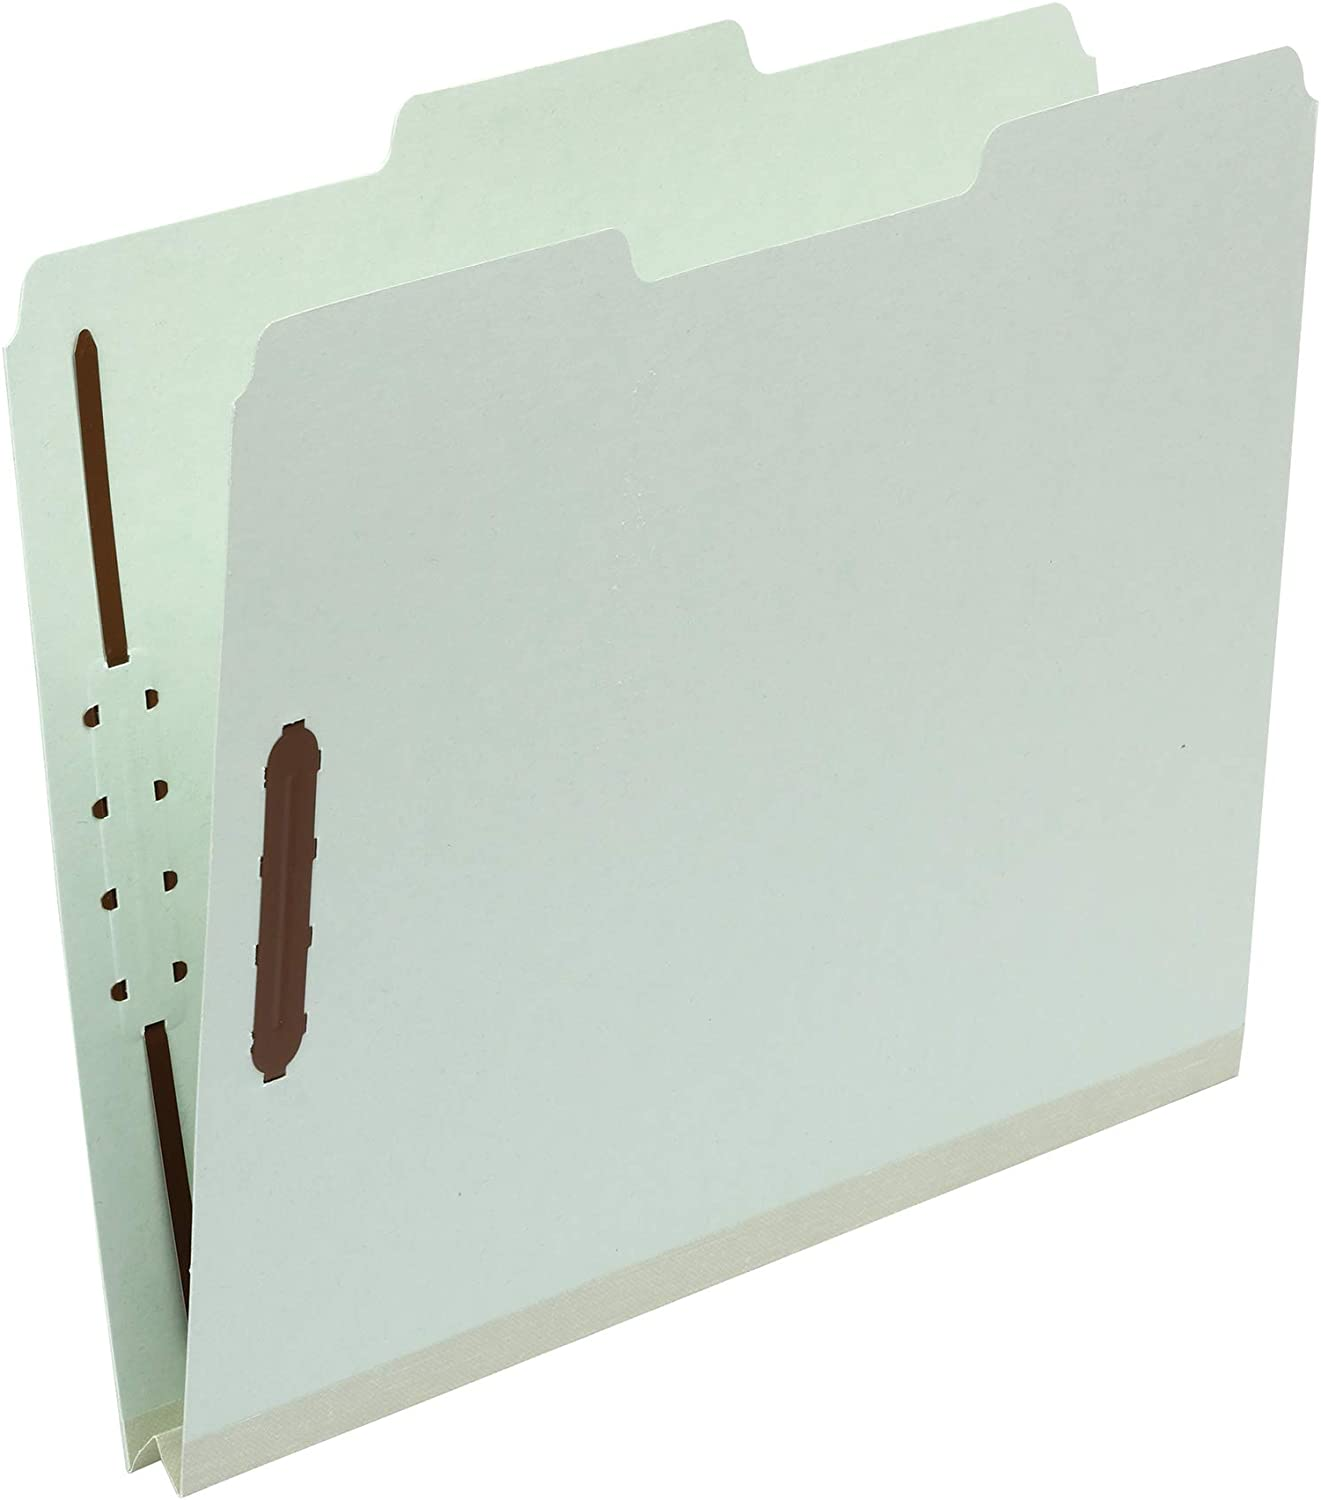 "AmazonBasics Pressboard Fastener Folder - 100% Recycled, 1/3 Tab, 1"" Expansion, 2"" Fastener, Light Green, Letter, 25 per Box"